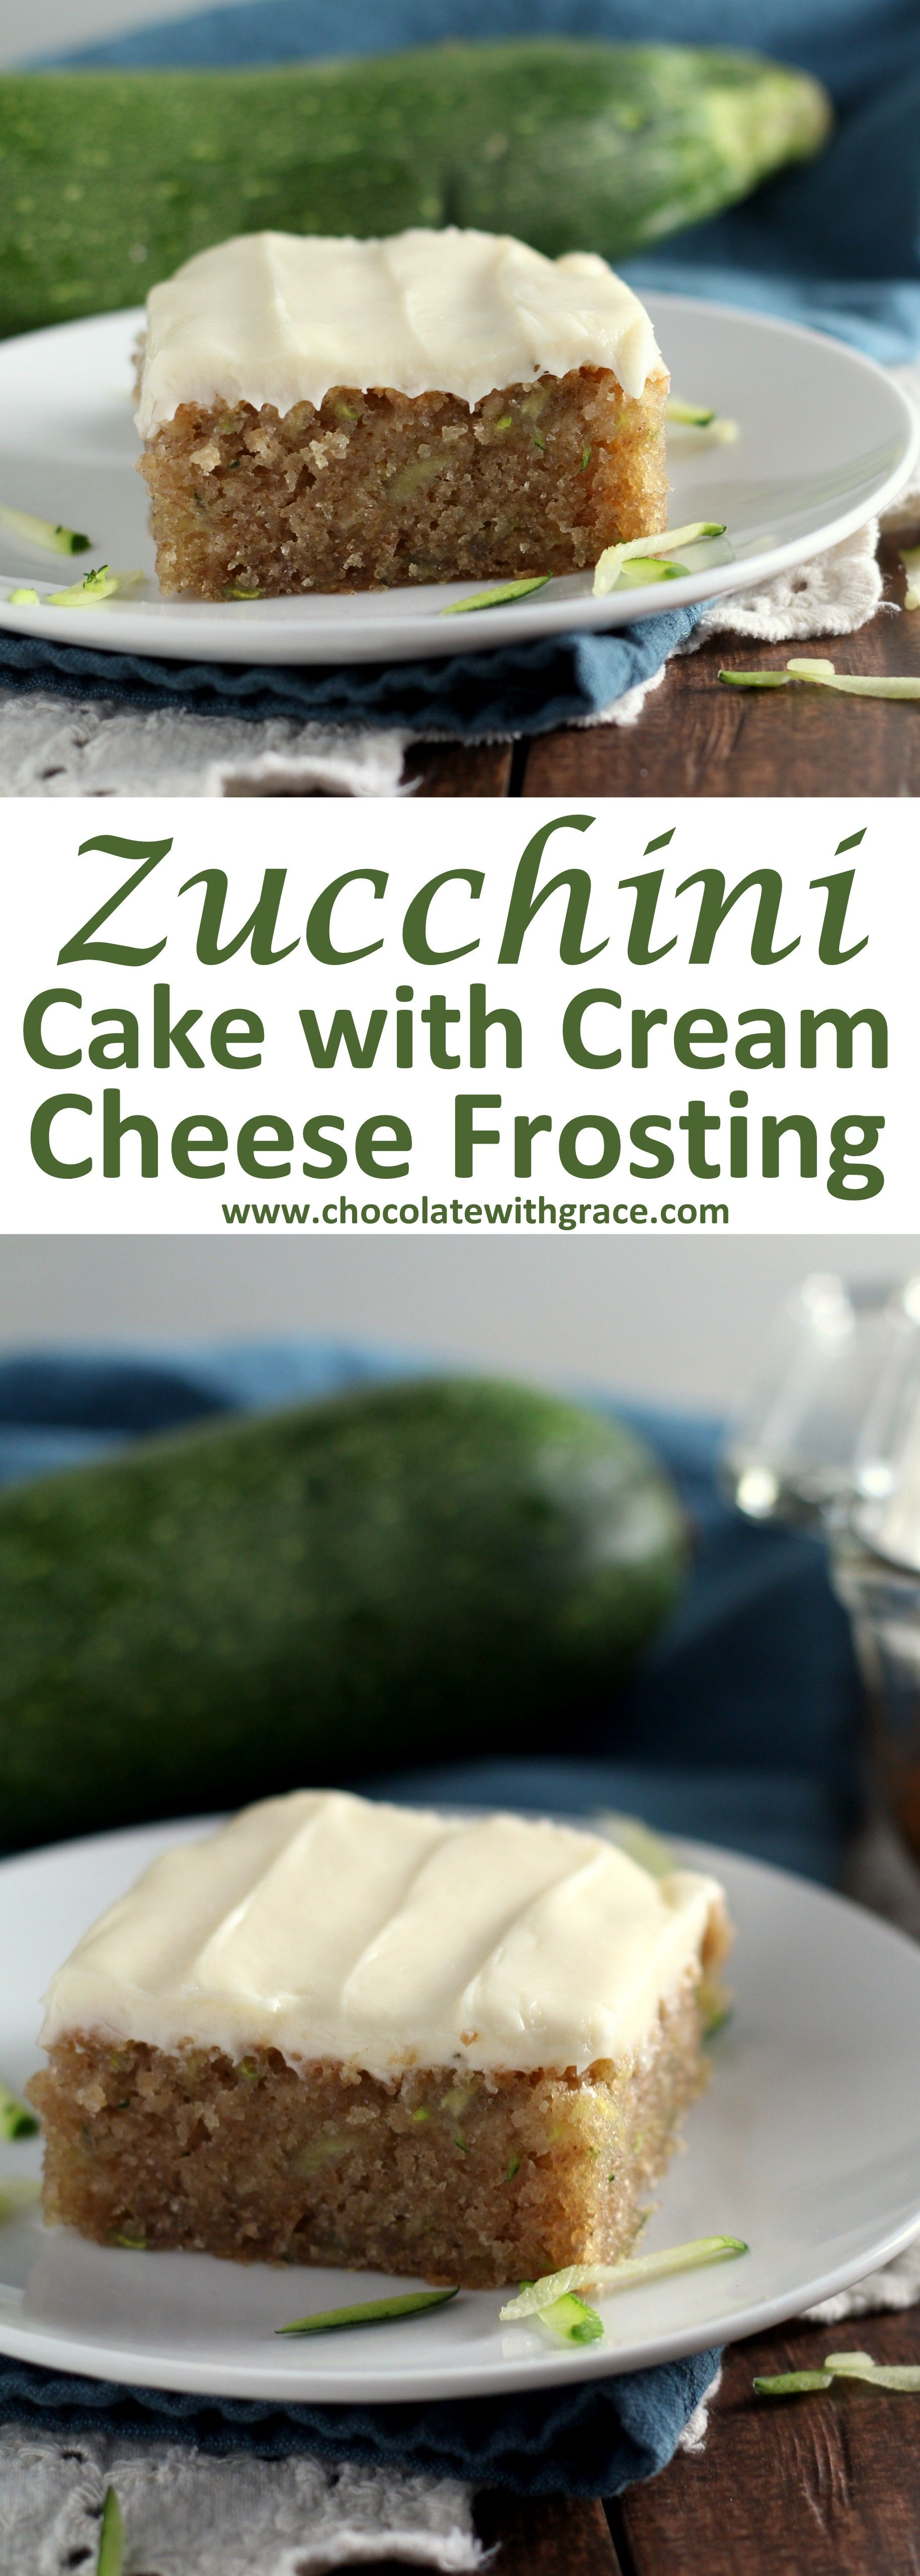 Cream Cheese Frosted Zucchini Cake - Chocolate With Grace